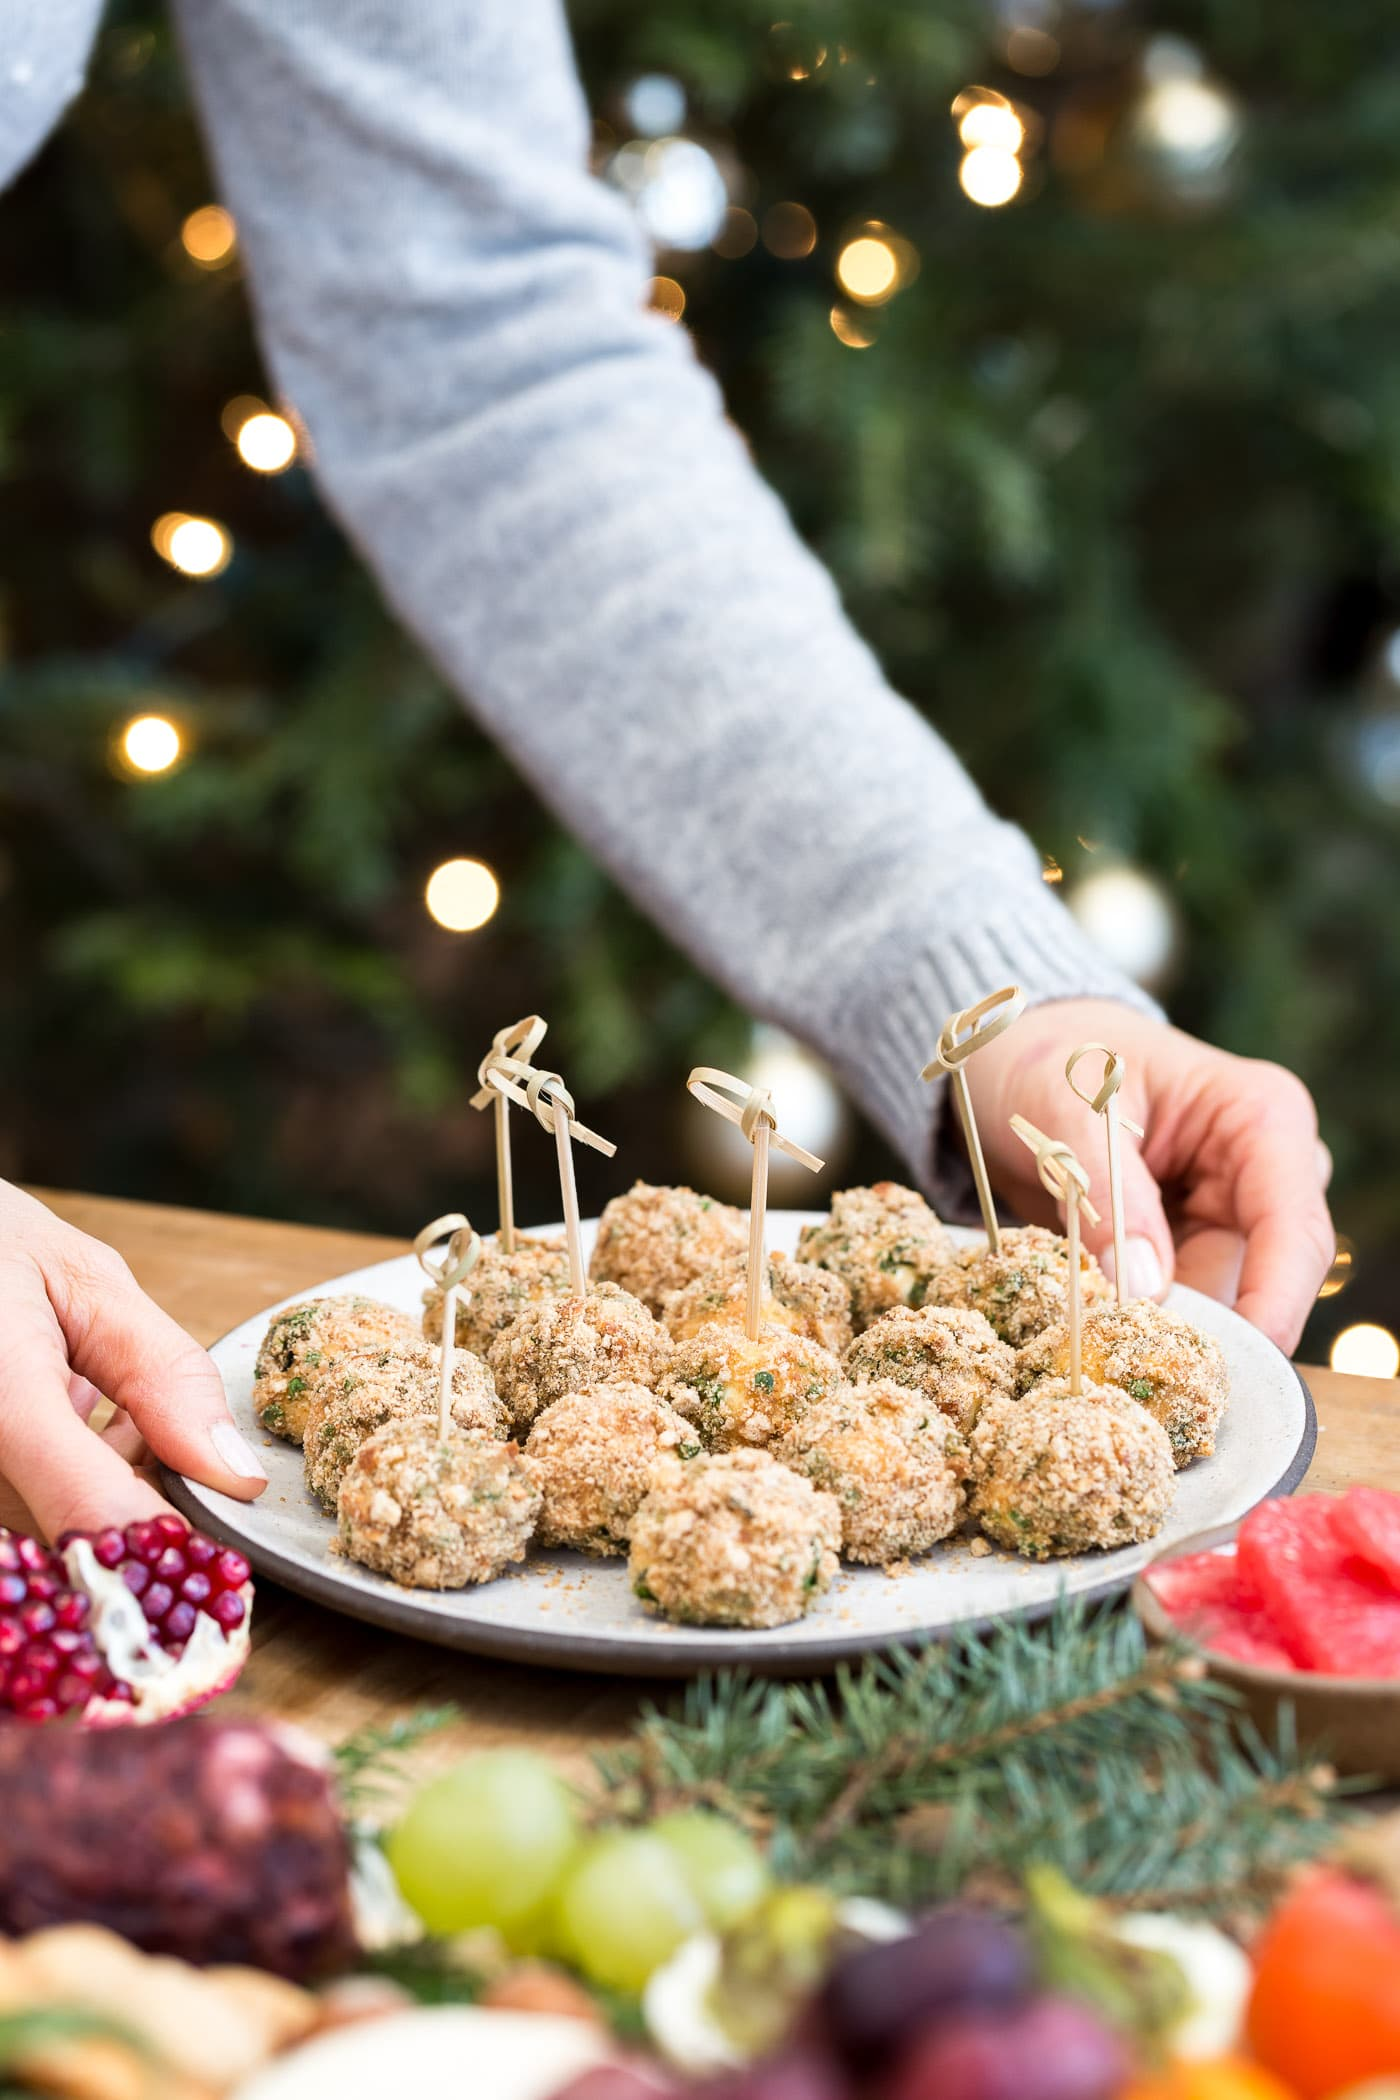 A woman is photographed as she is placing a plate of baked goat cheese balls on a plate.